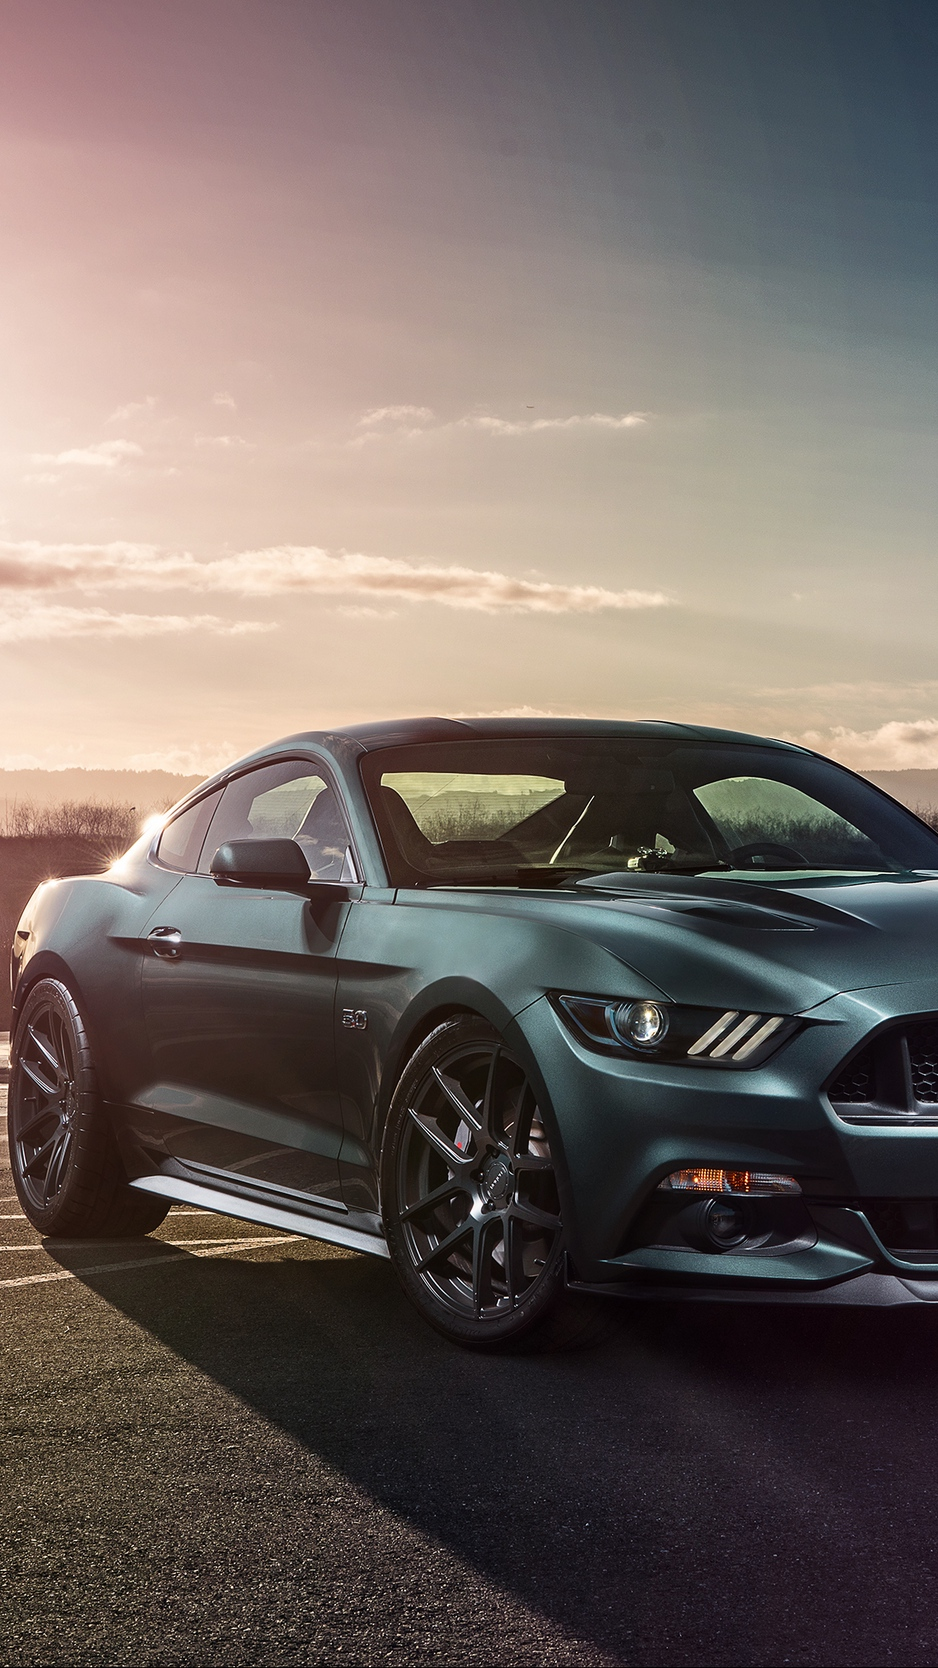 Wallpaper Ford Mustang Gt, Ford, Side View, Sports - Ford Mustang Mach 1 2020 , HD Wallpaper & Backgrounds